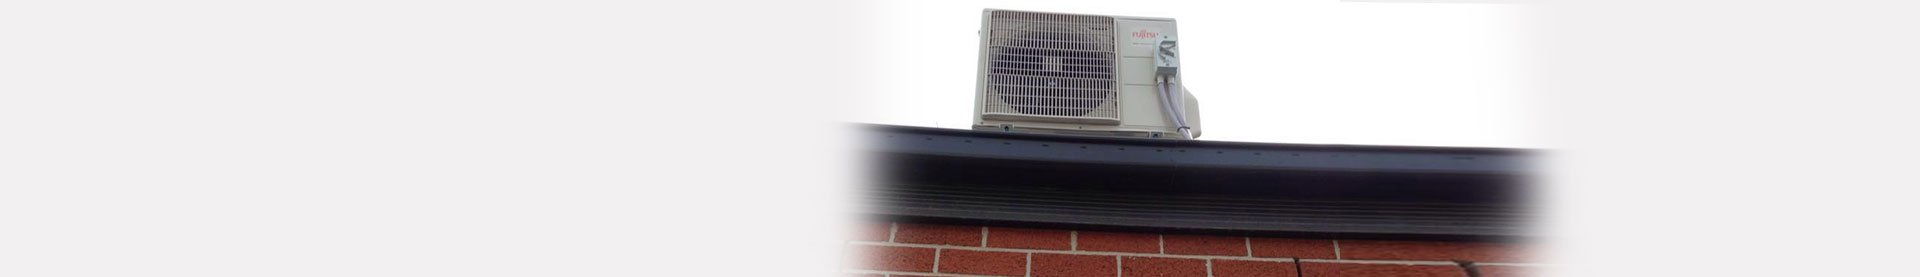 Air Conditioning Install Doreen Carlton Mill Park Air